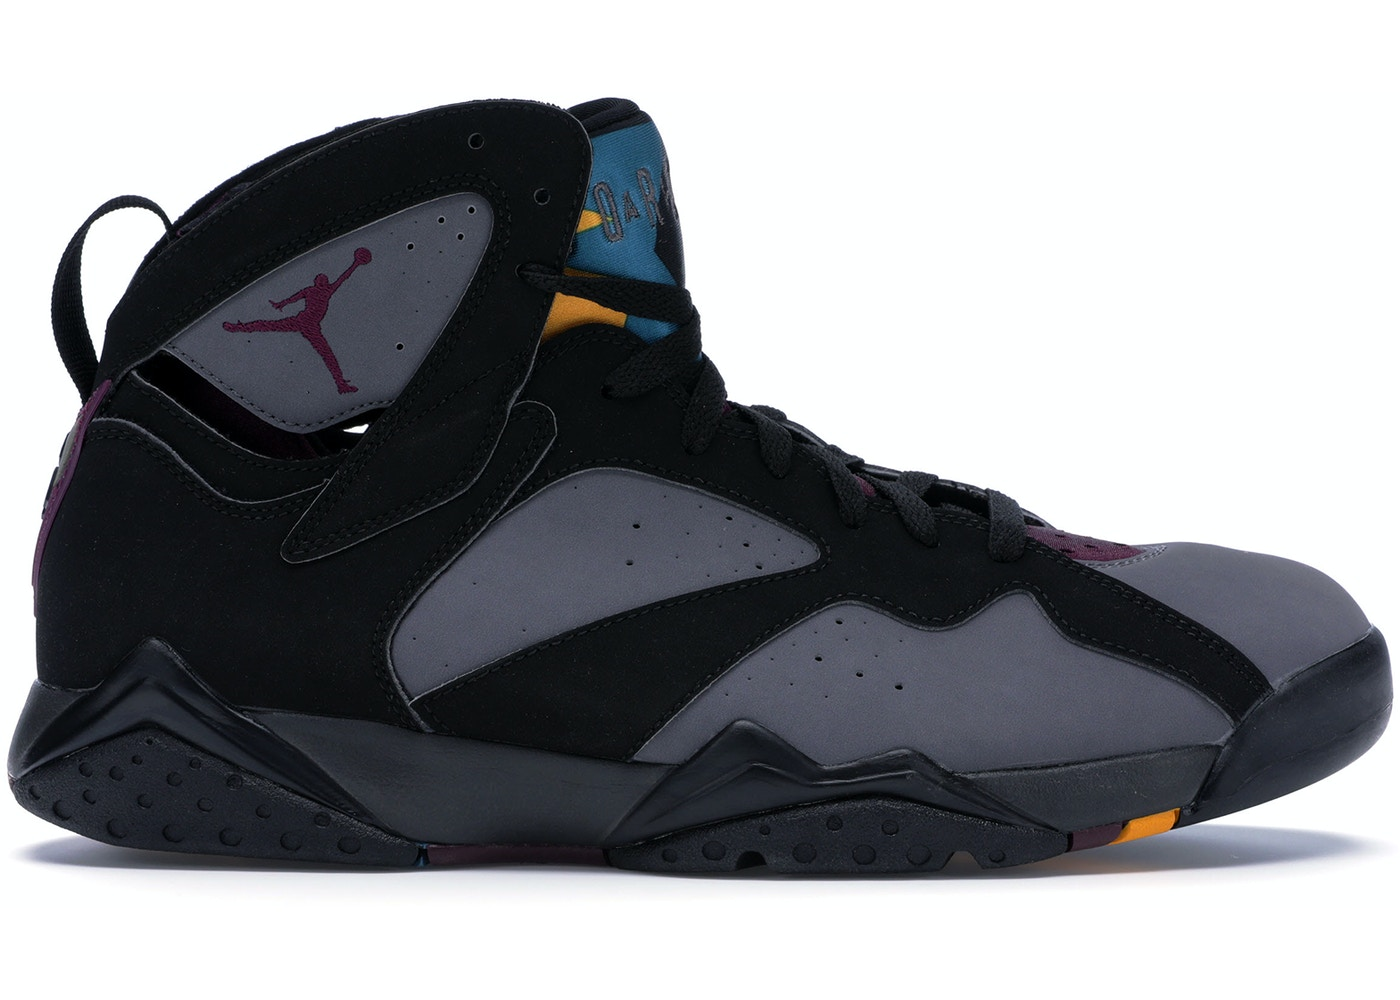 timeless design cb355 360ac Jordan 7 Retro Bordeaux (2015)